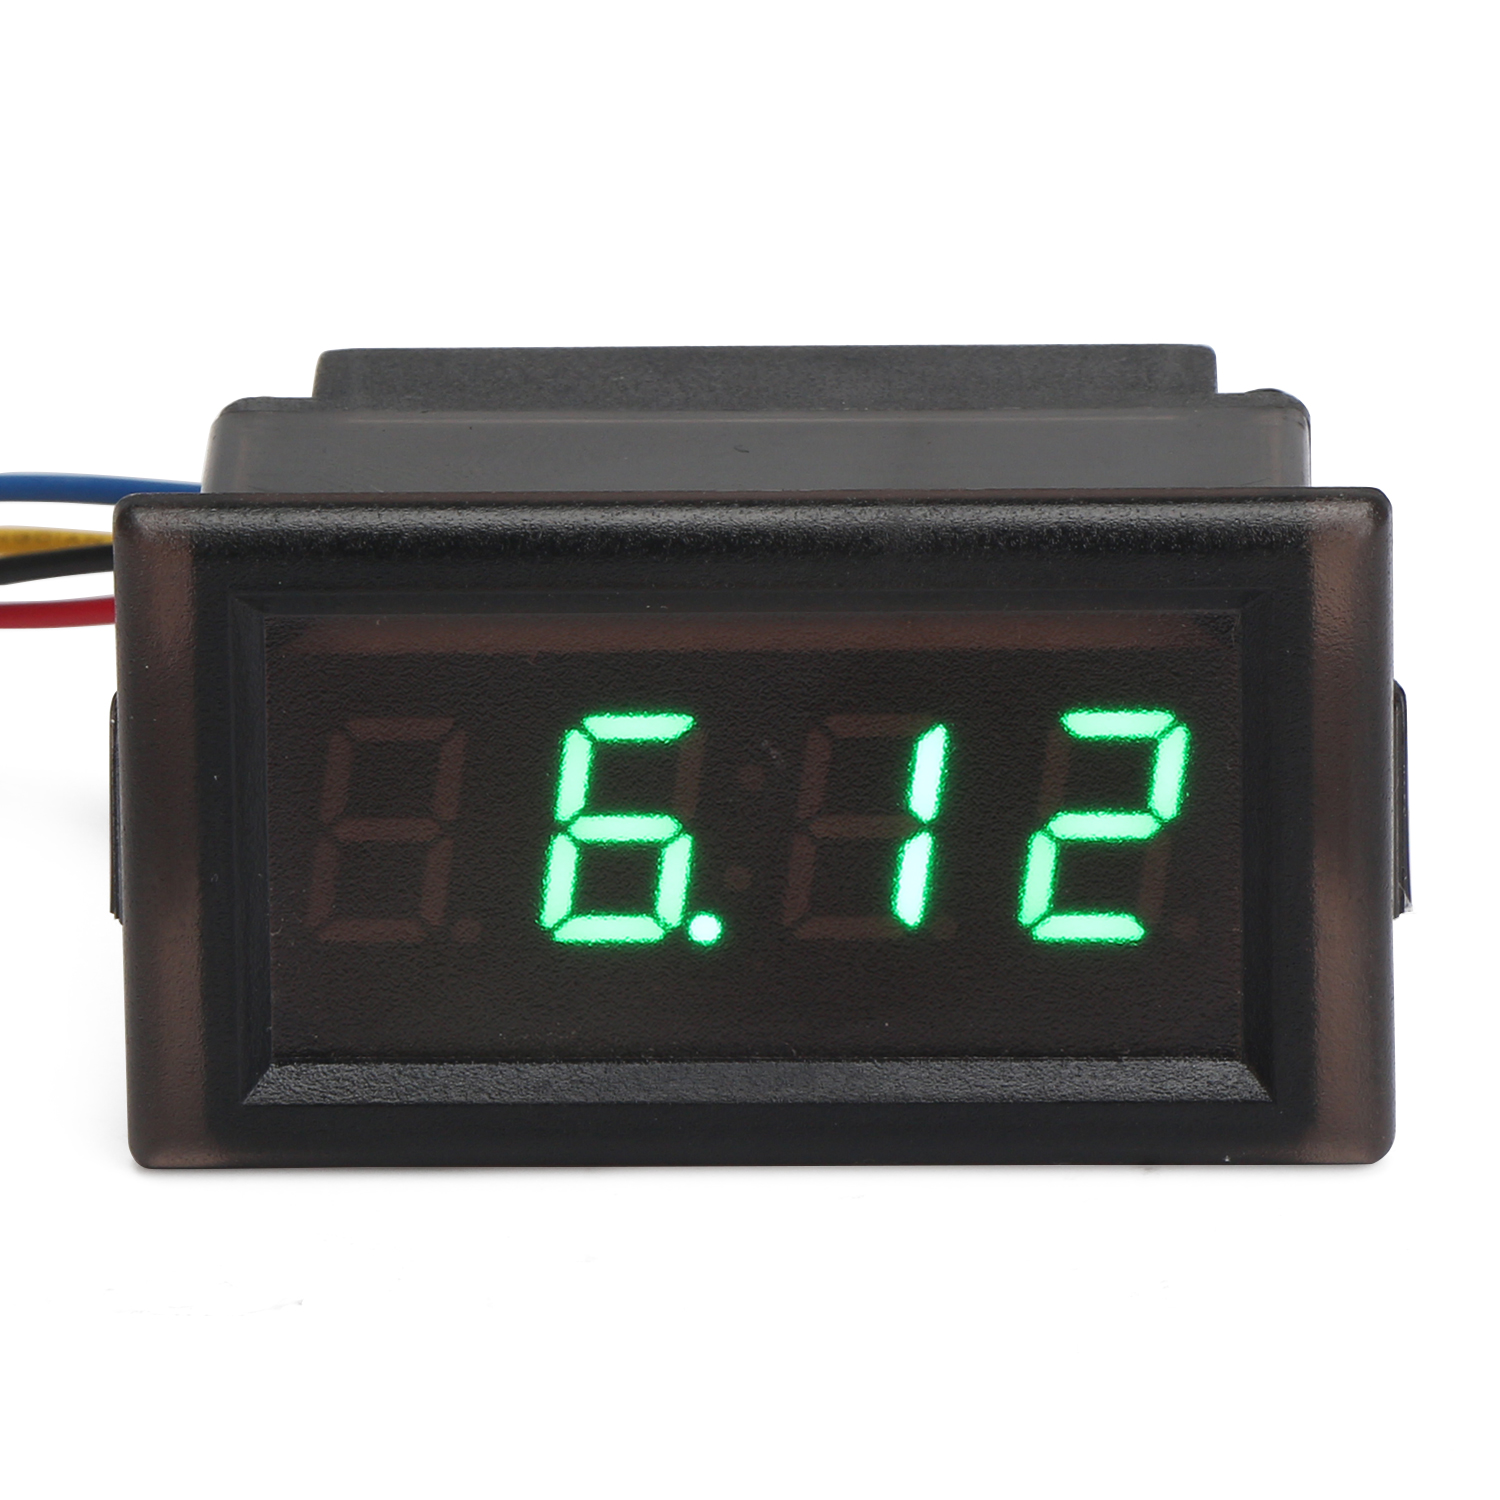 Waterproof Digital Clock Alarm Meter Dc 4 5 30v 24 Hour